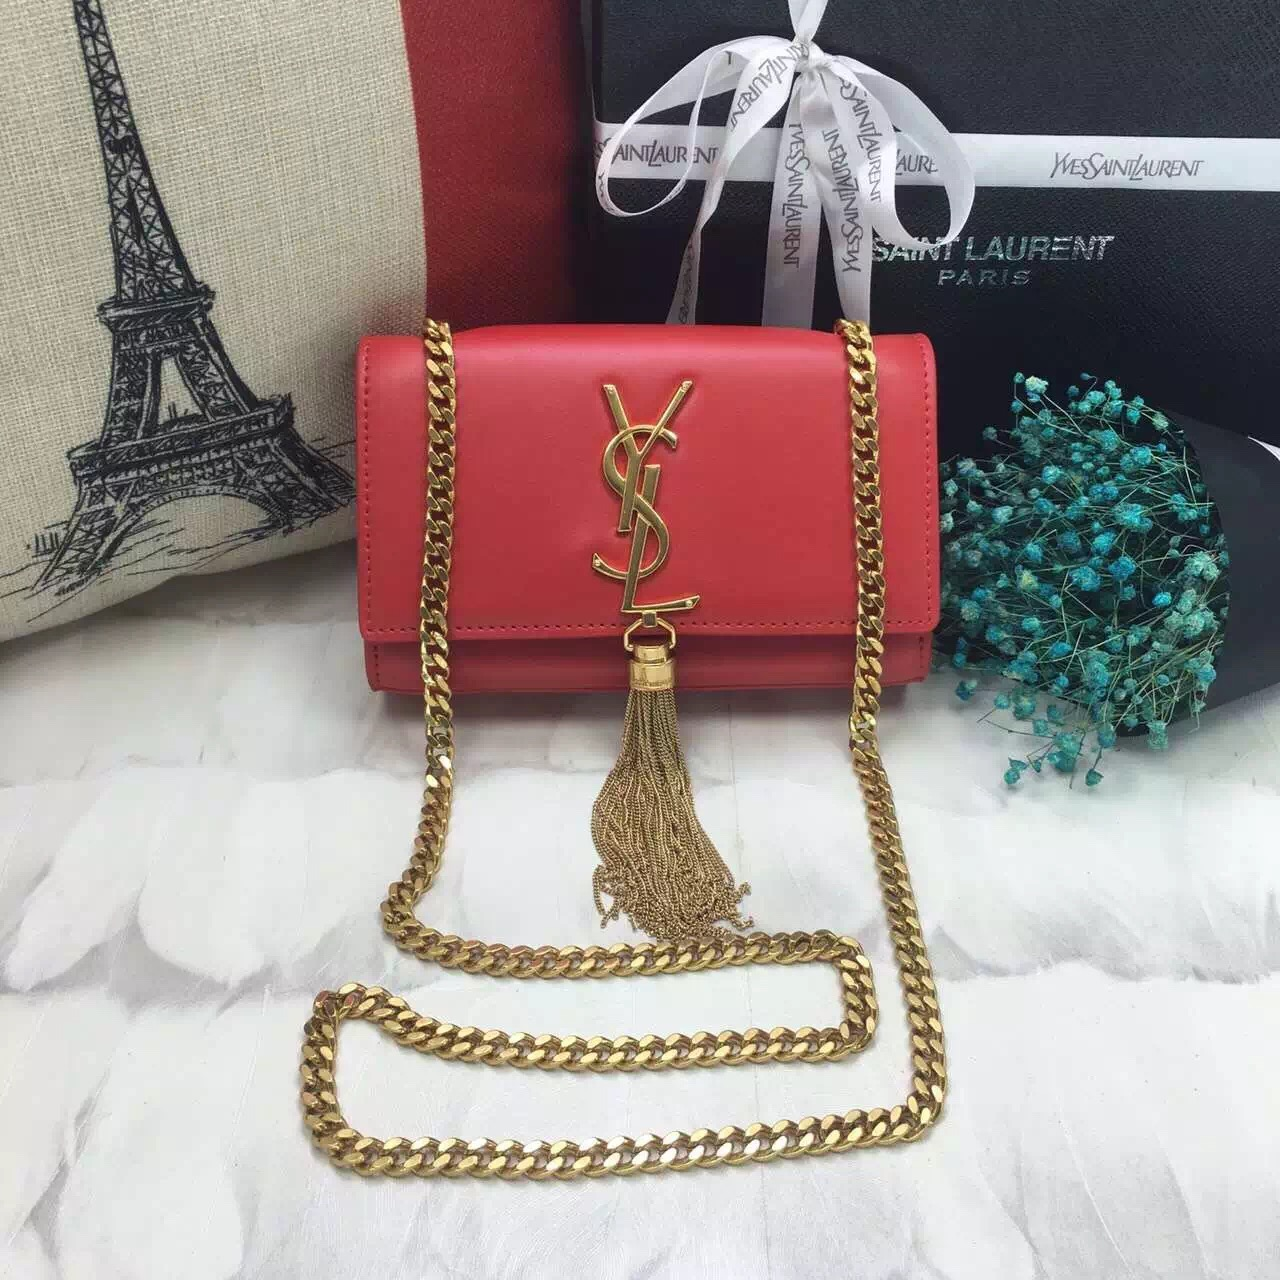 YSL Small Tassel Chain Leather Bag 17cm Red Gold